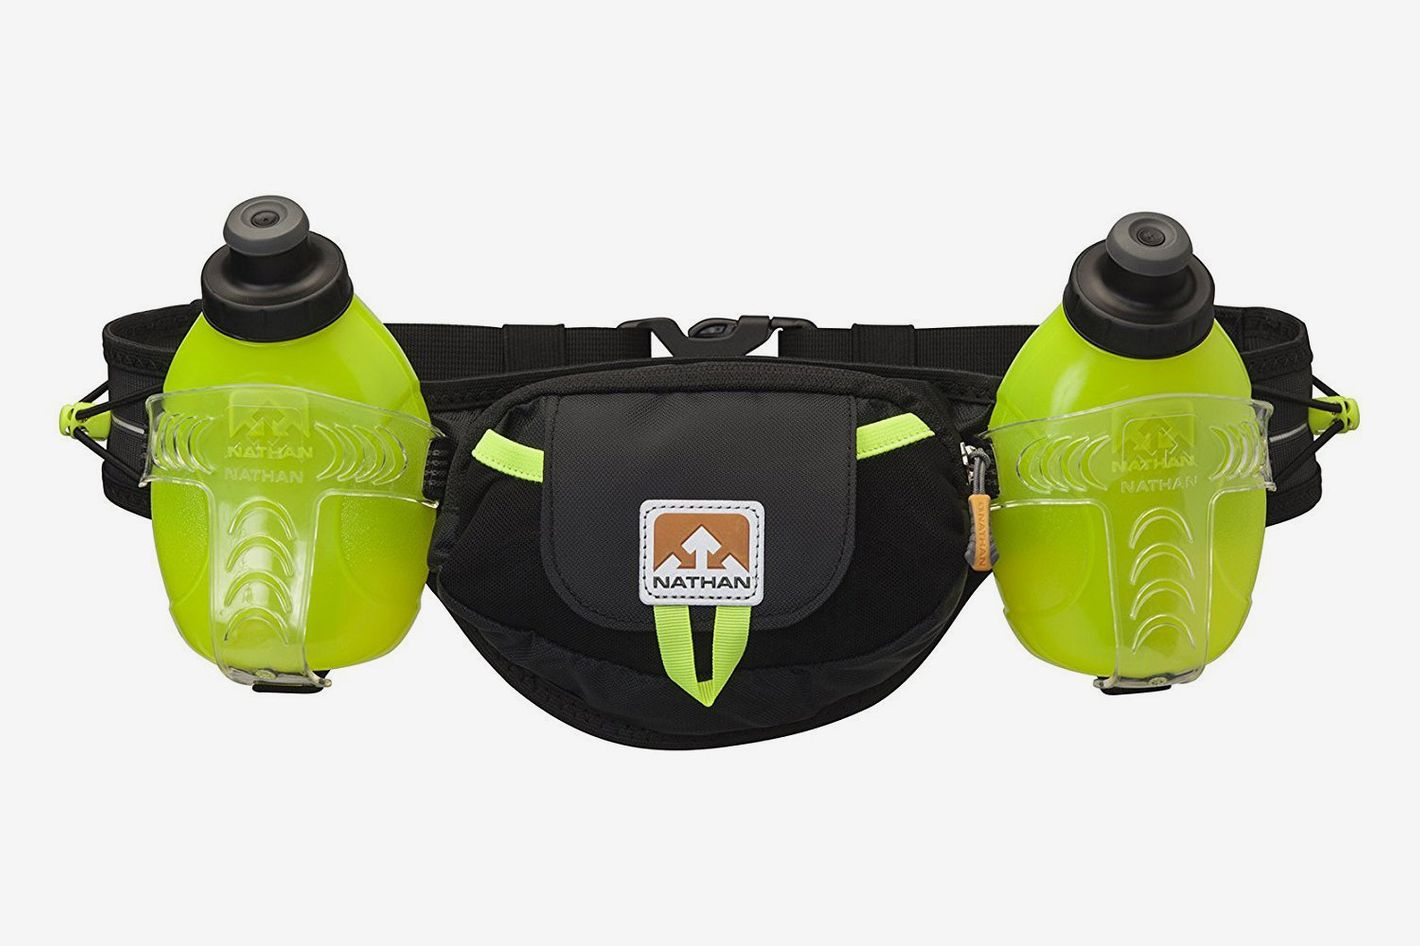 Nathan Trail Mix Hydration Running Belt